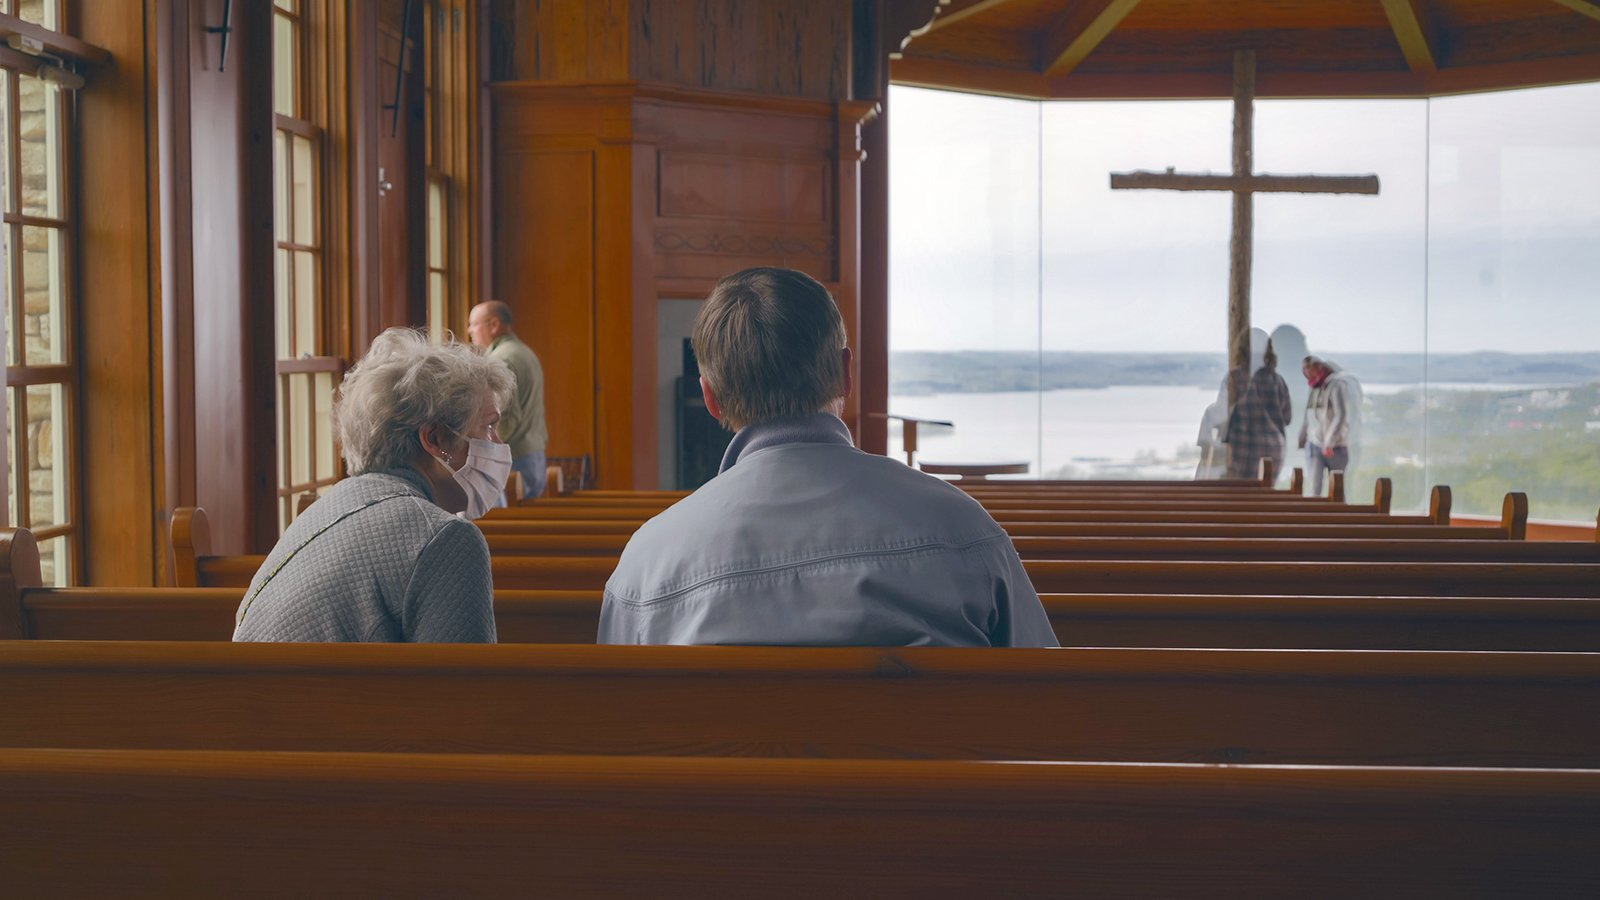 Study says Attendance is hemorrhaging at small and midsize US congregations